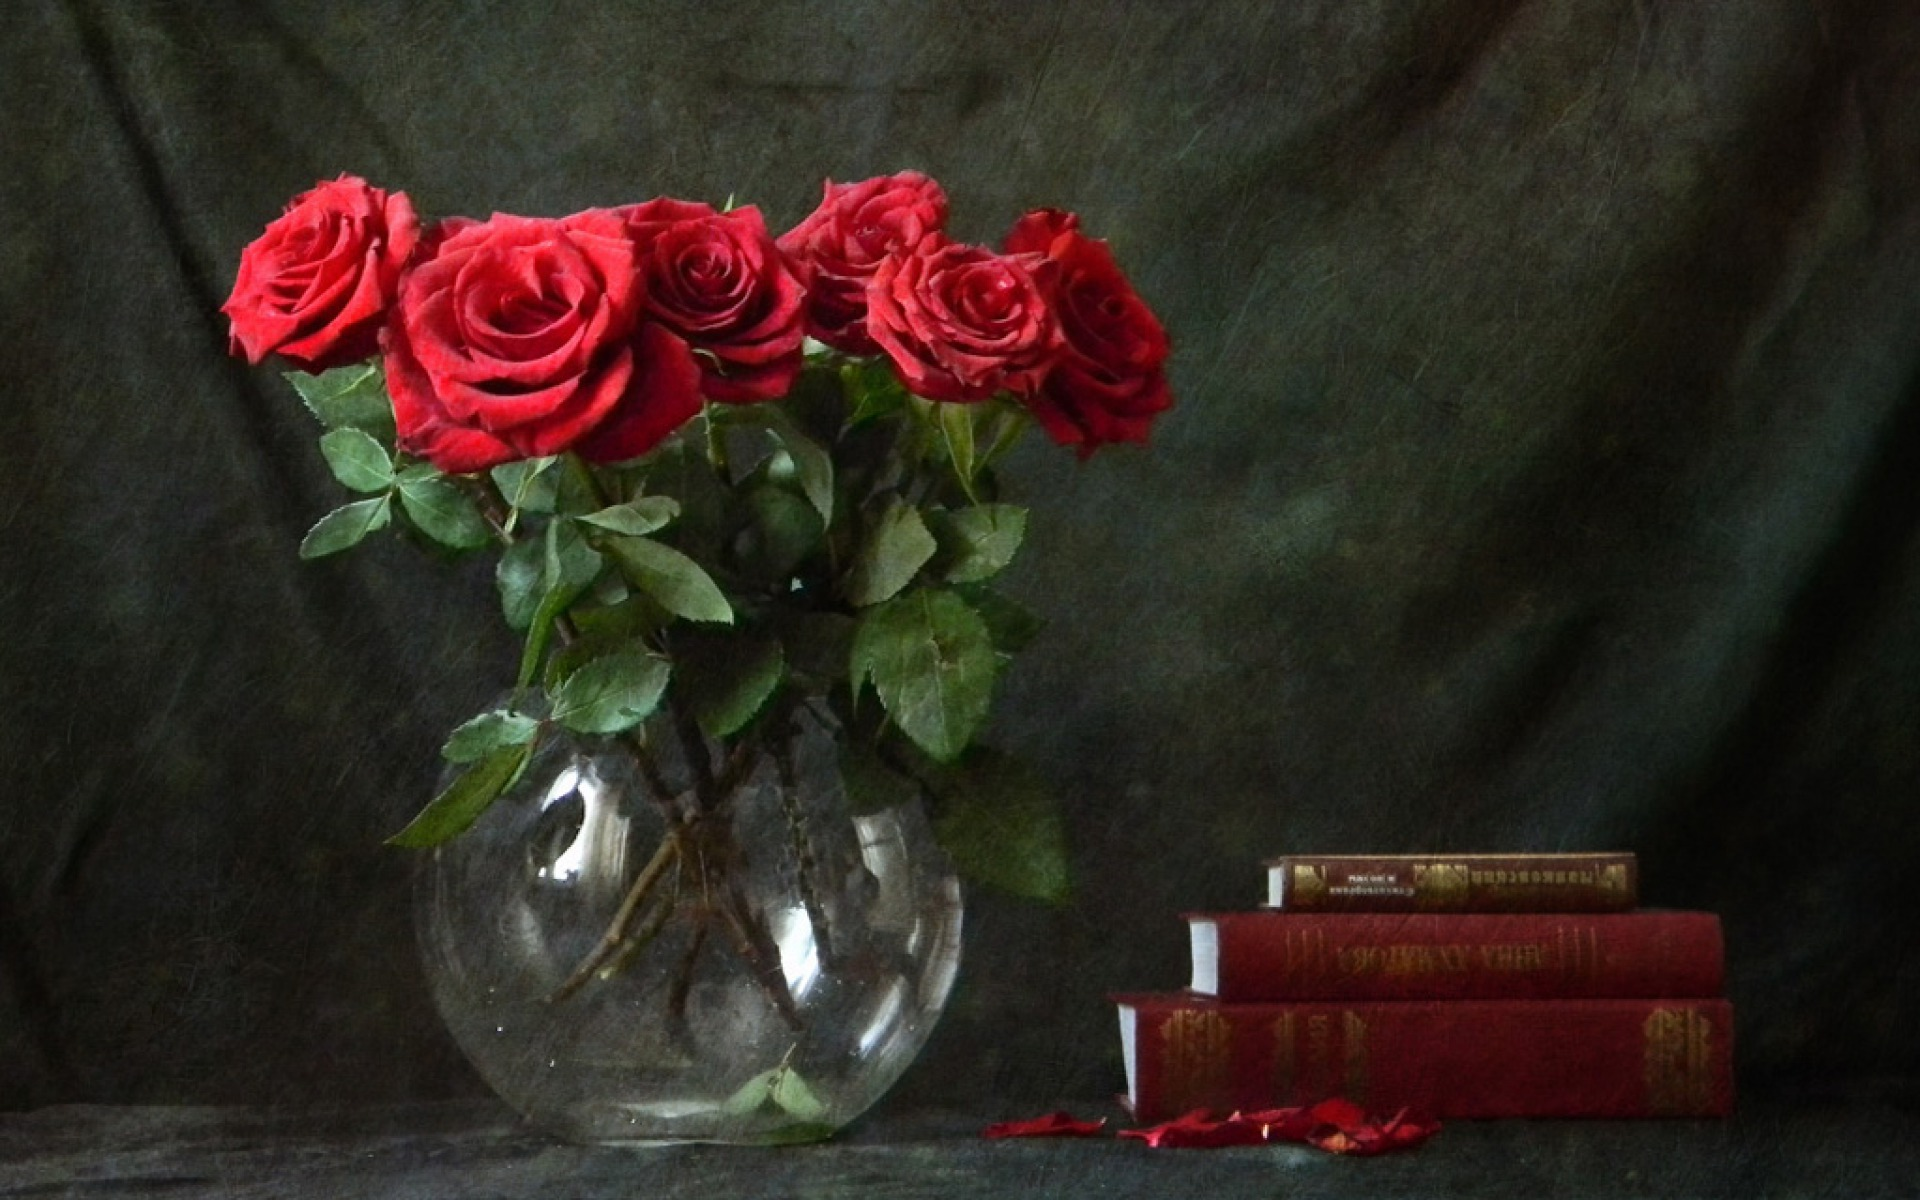 hd wallpaper for red roses